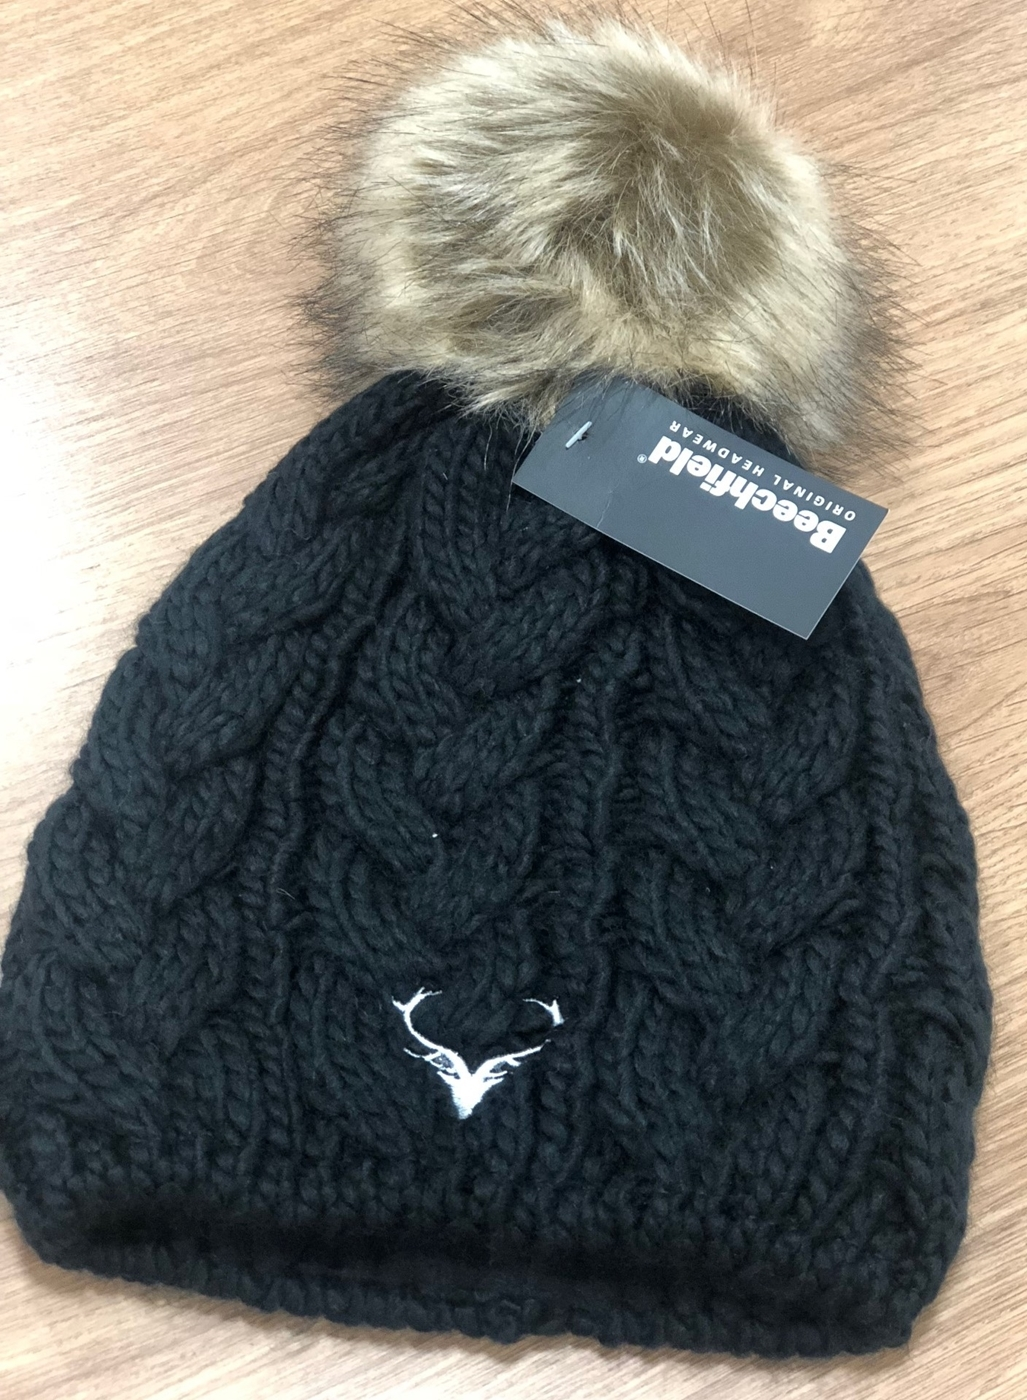 Ross County FC Club Shop. Black Cable Knit Bobble Hat b21566236db